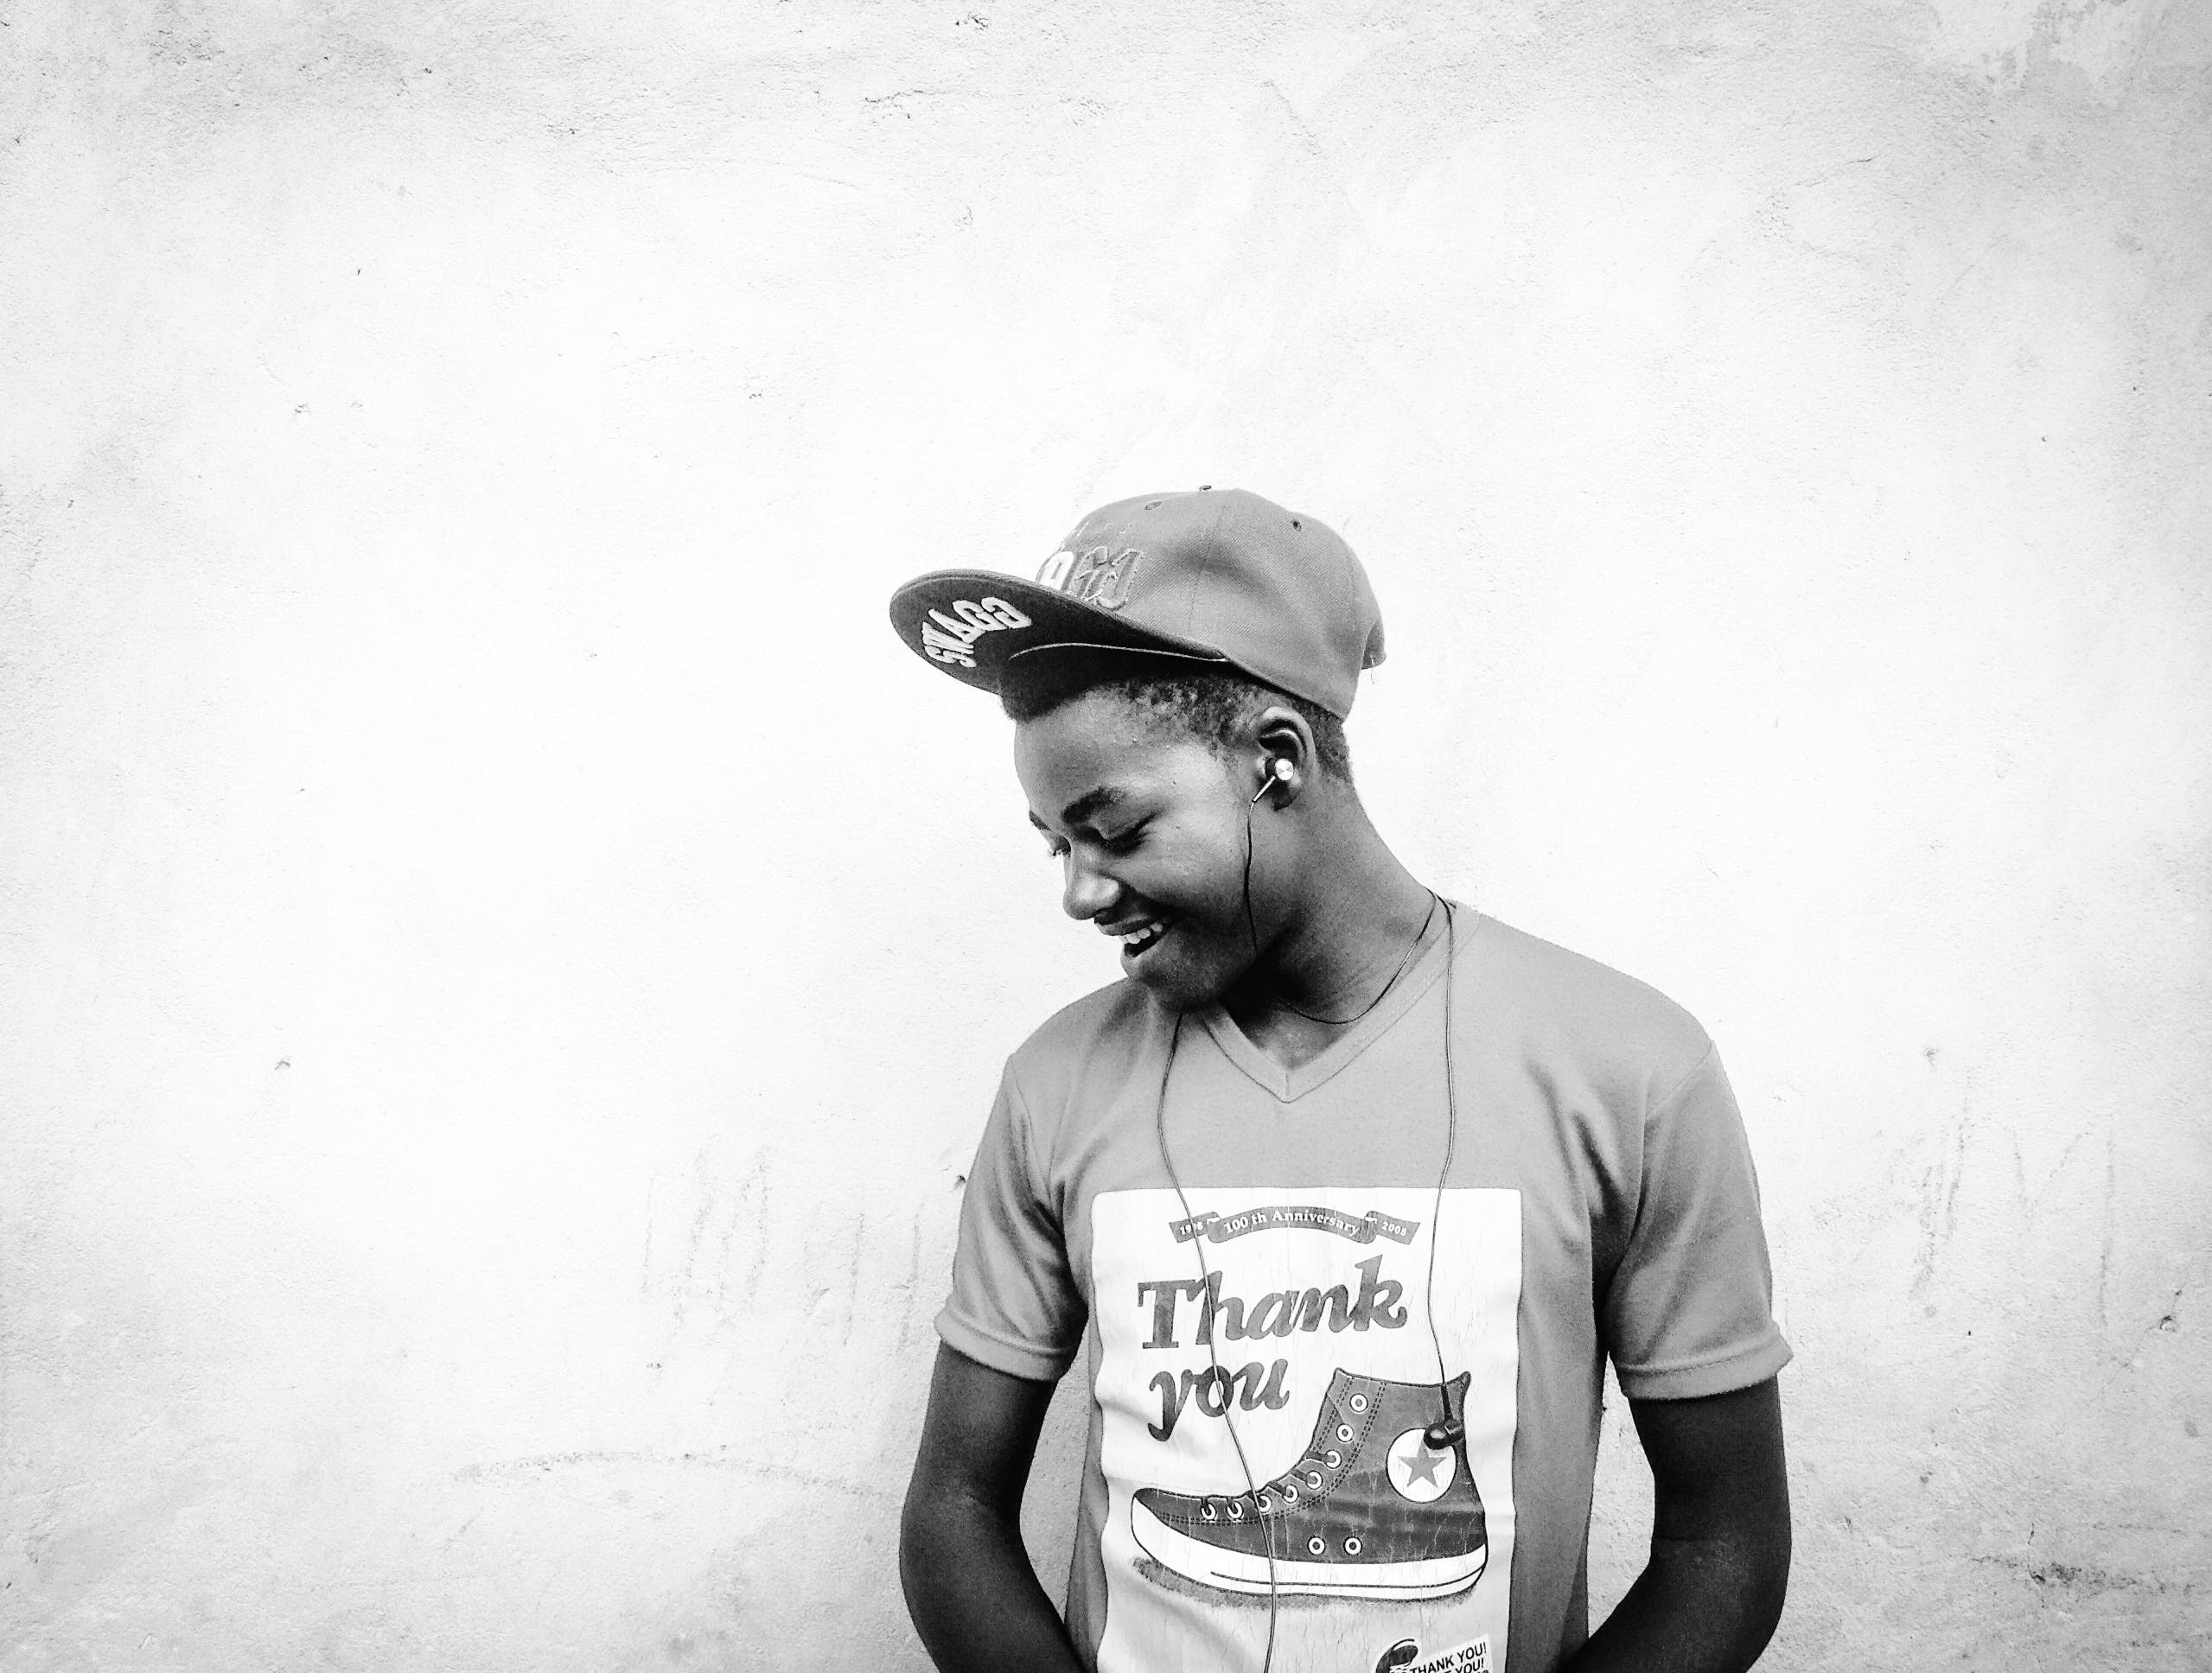 Smiling Man Beside Wall Grayscale Photography